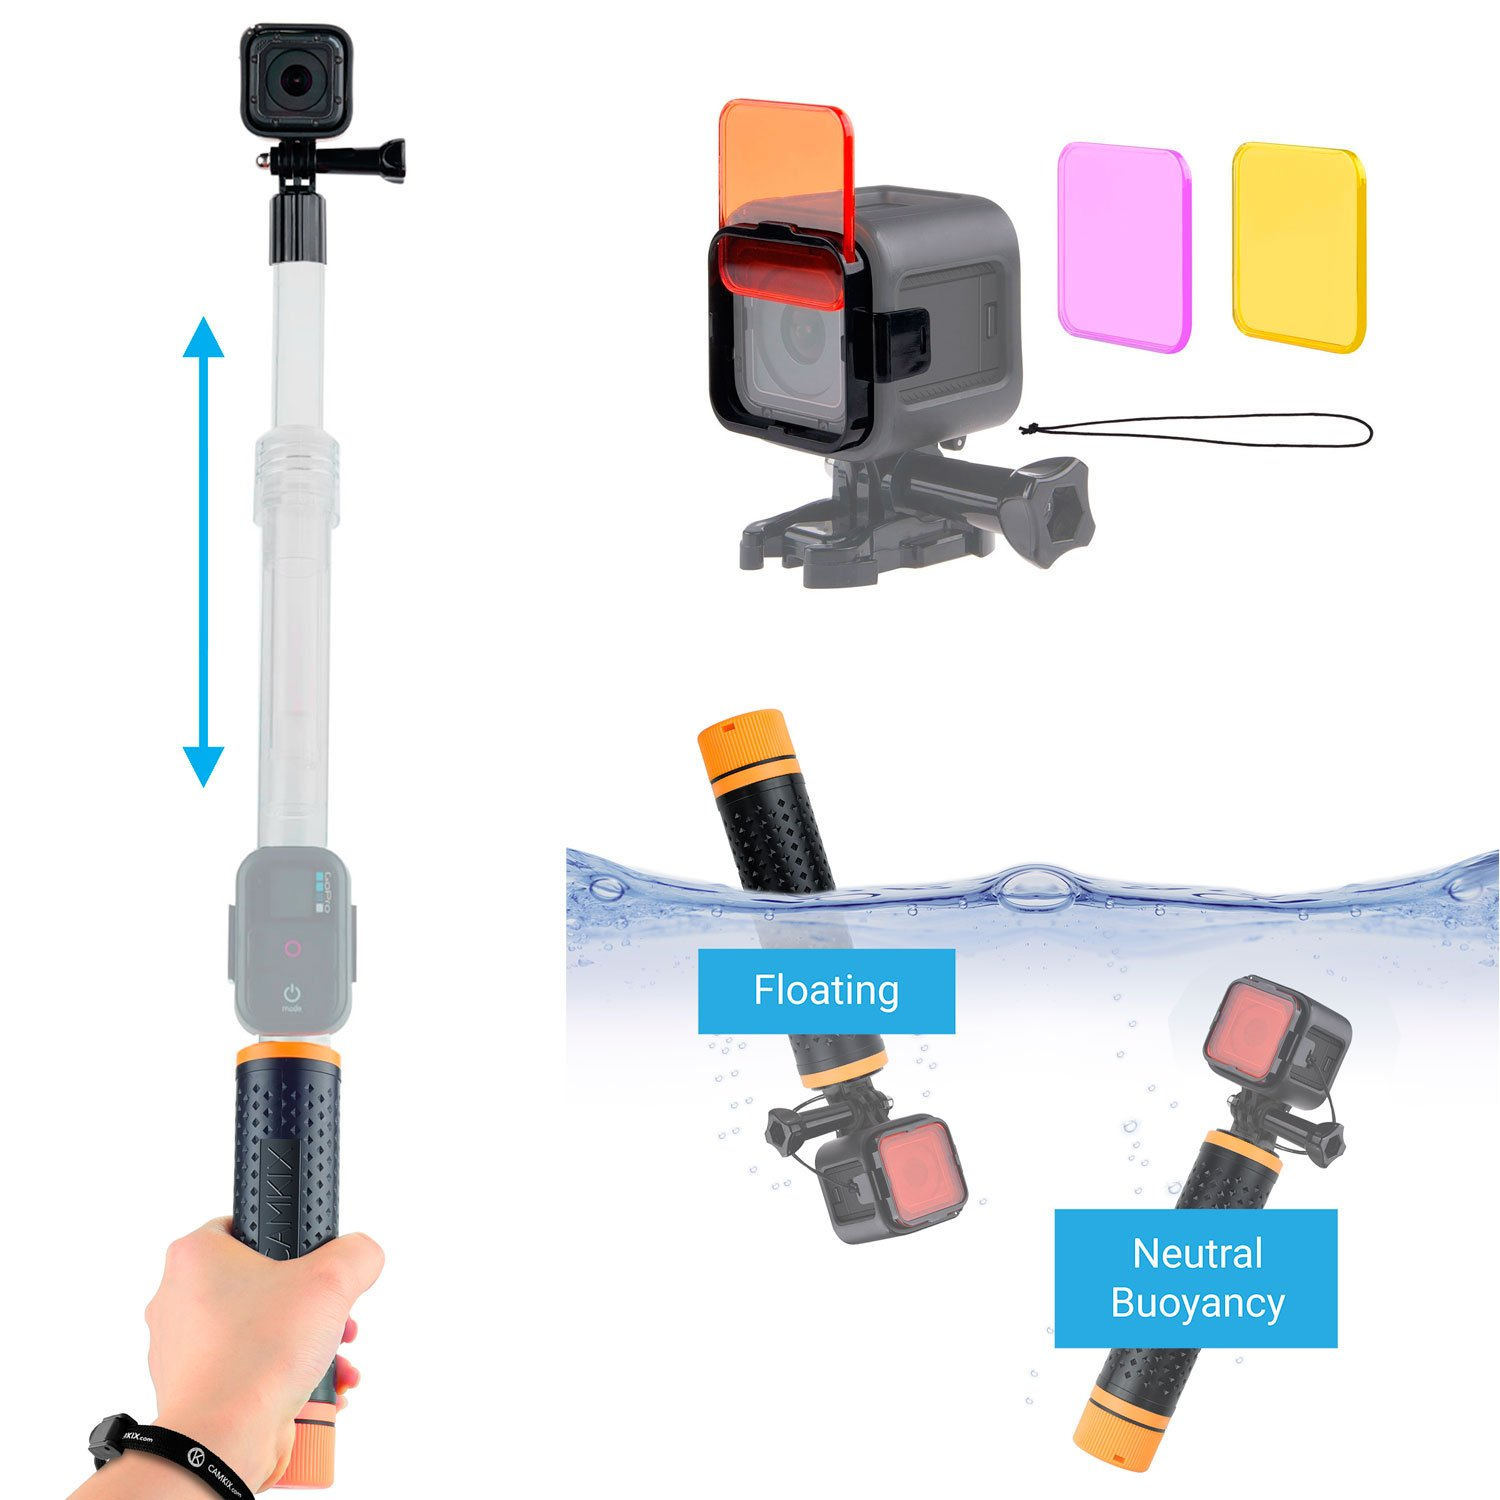 Watersports and Diving Bundle for GoPro HERO5 / 4 Session Camera including Modular Waterproof Telescopic Pole / Floating Hand Grip in one (6.7'' to 15.7'') and Diving Lens Filter Kit - Enhances Colors